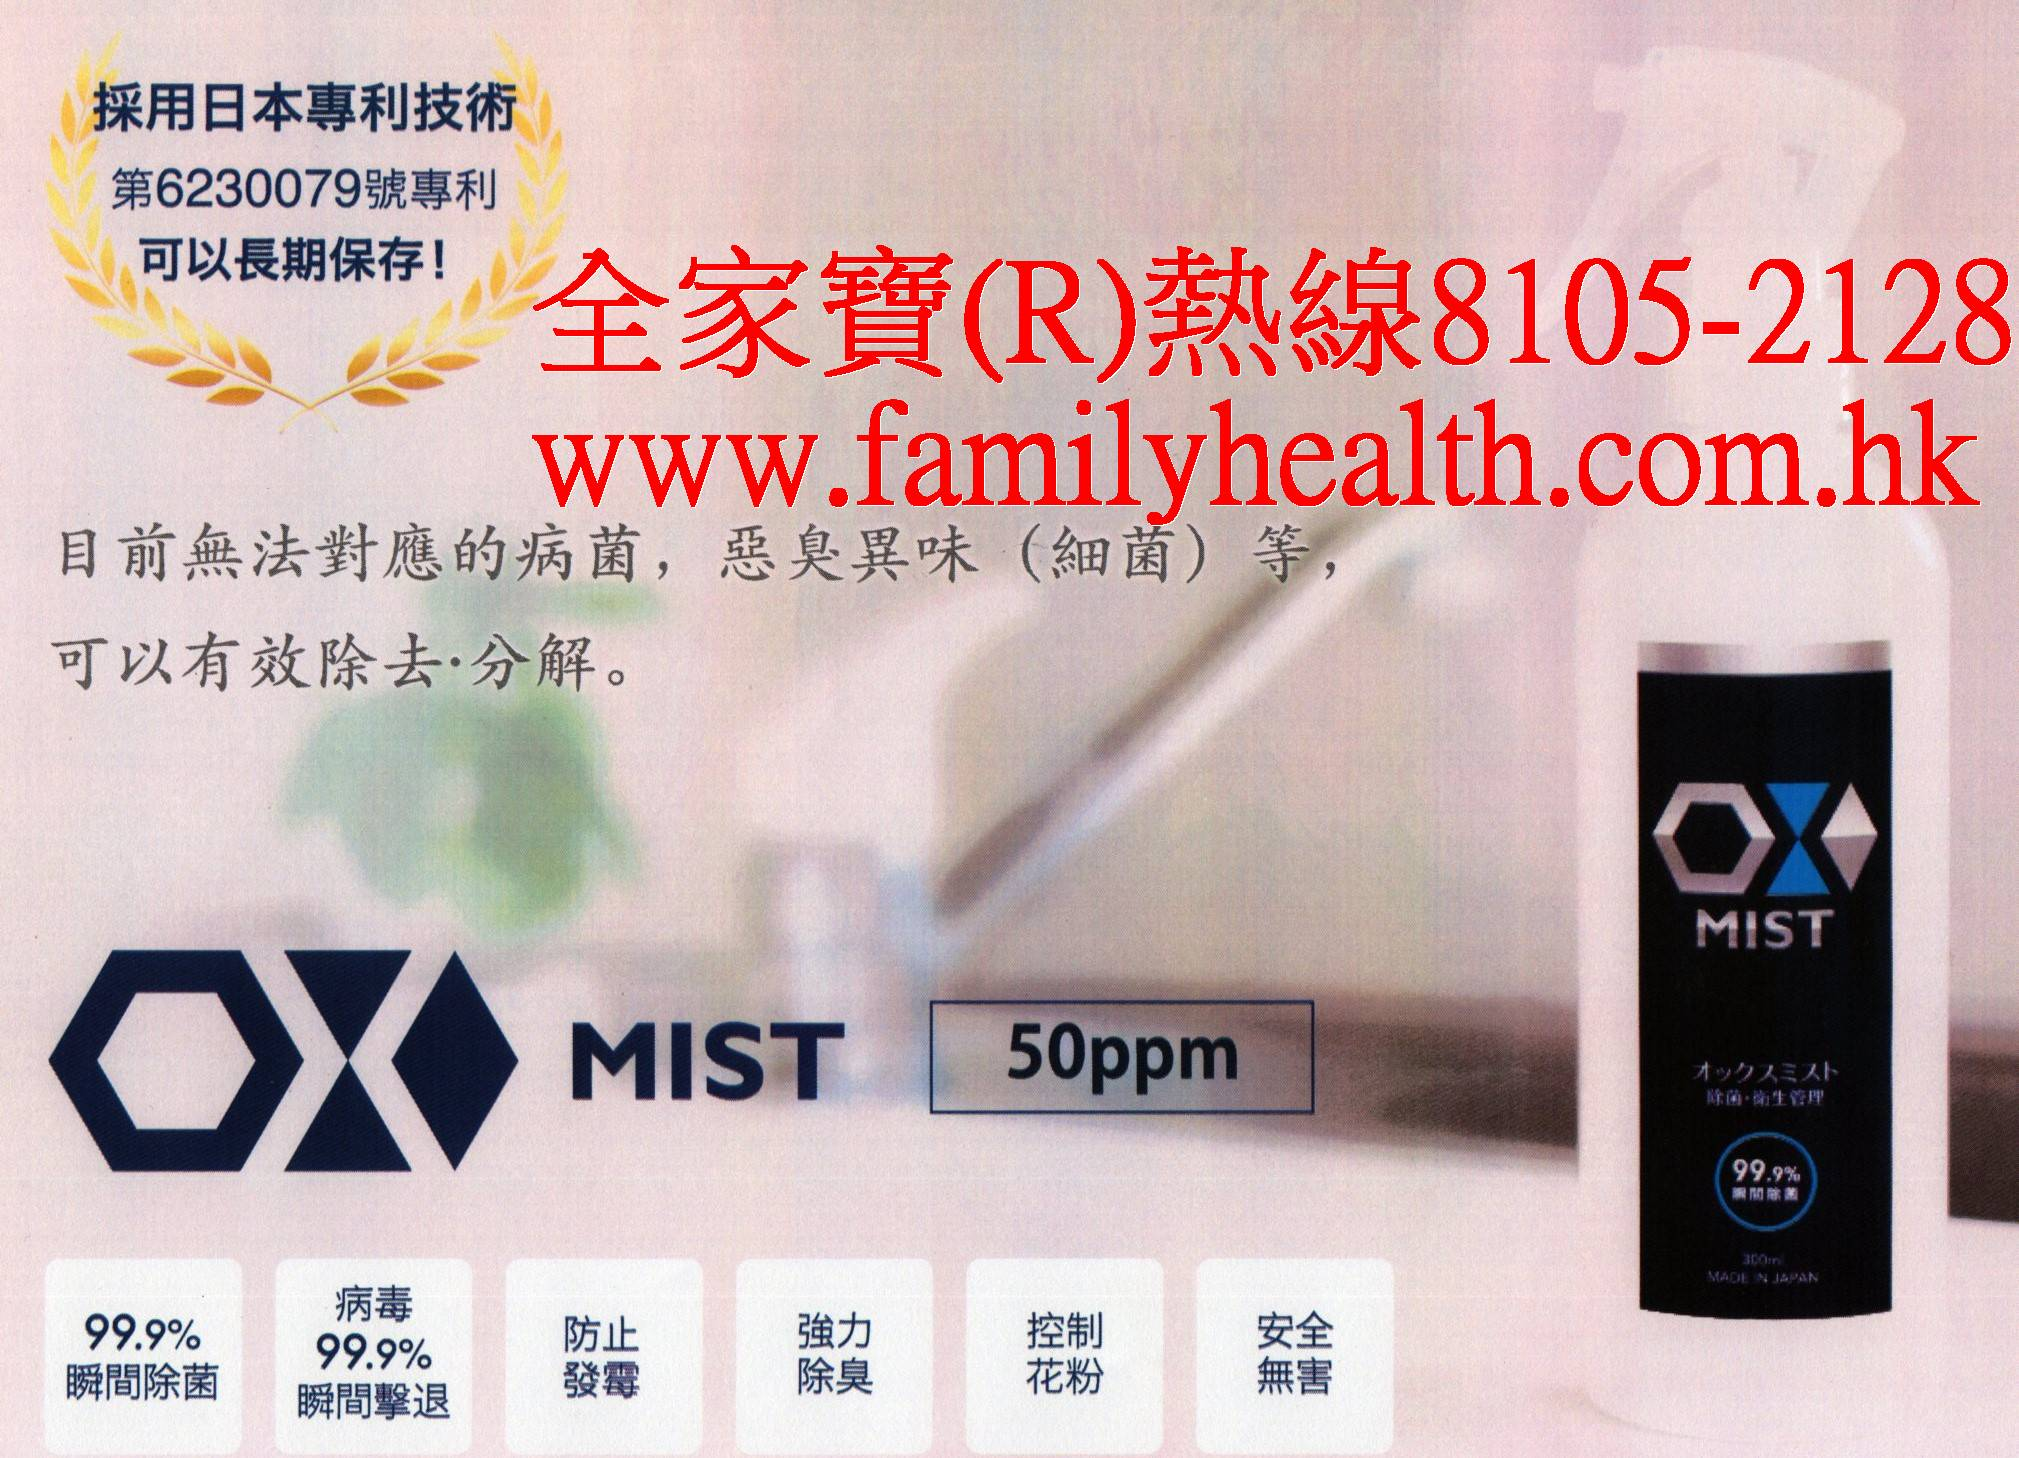 http://www.familyhealth.com.hk/files/full/1081_1.jpg